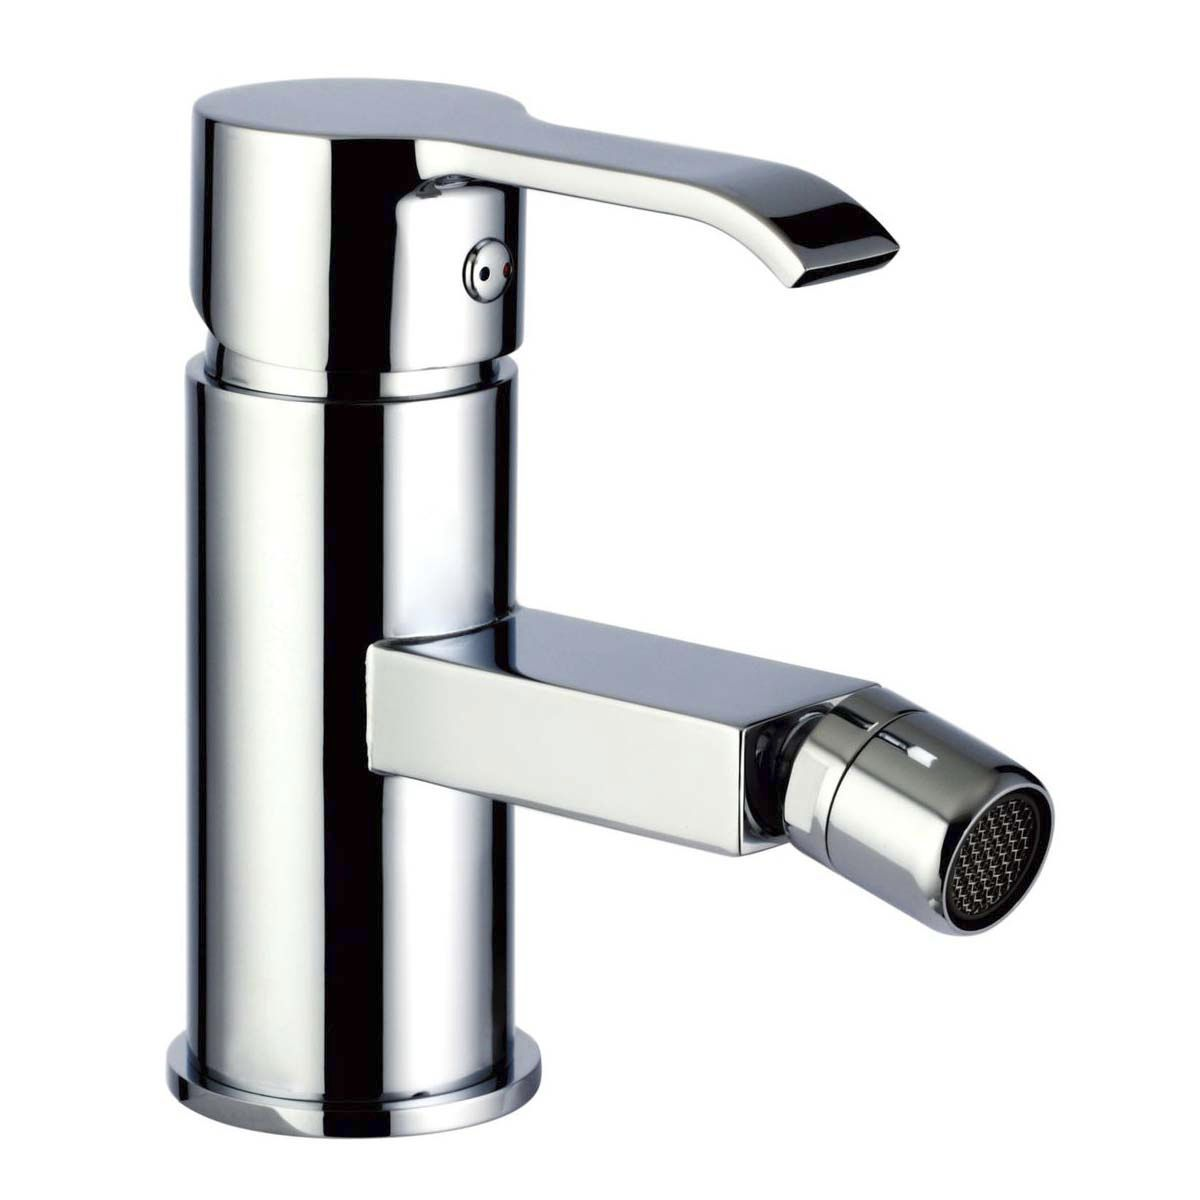 bidet mixer tap / chrome-plated brass / bathroom / 1-hole